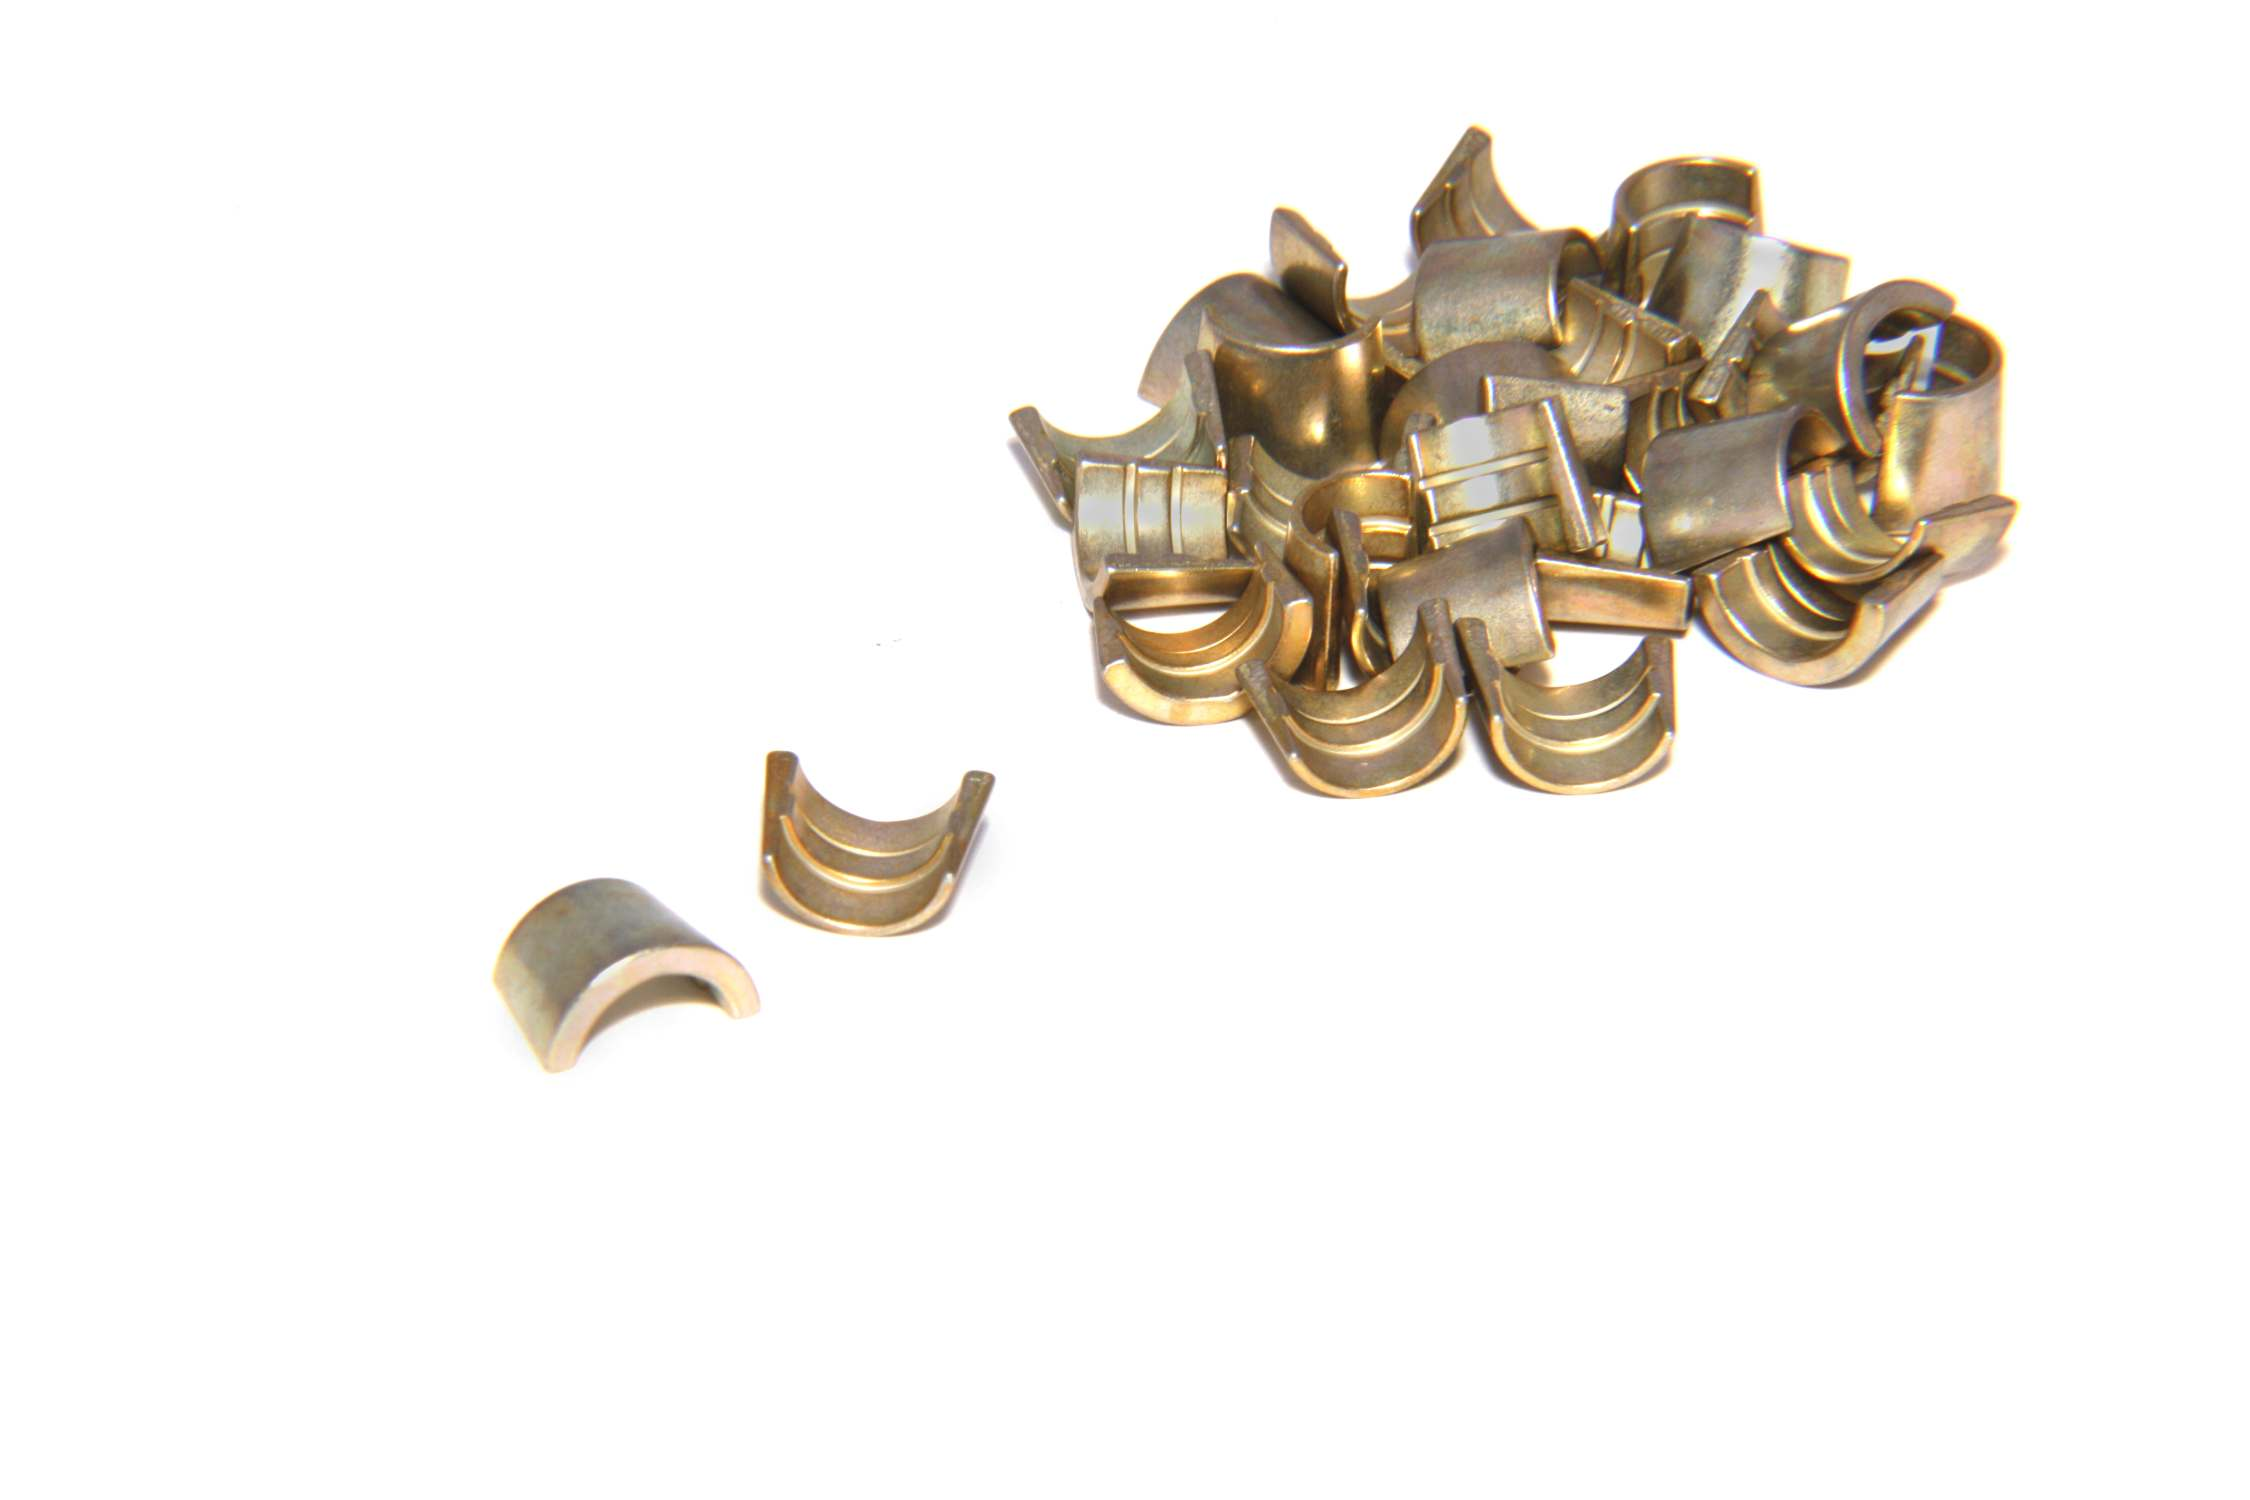 603-16 Competition Cams Valve Spring Lock Single Groove